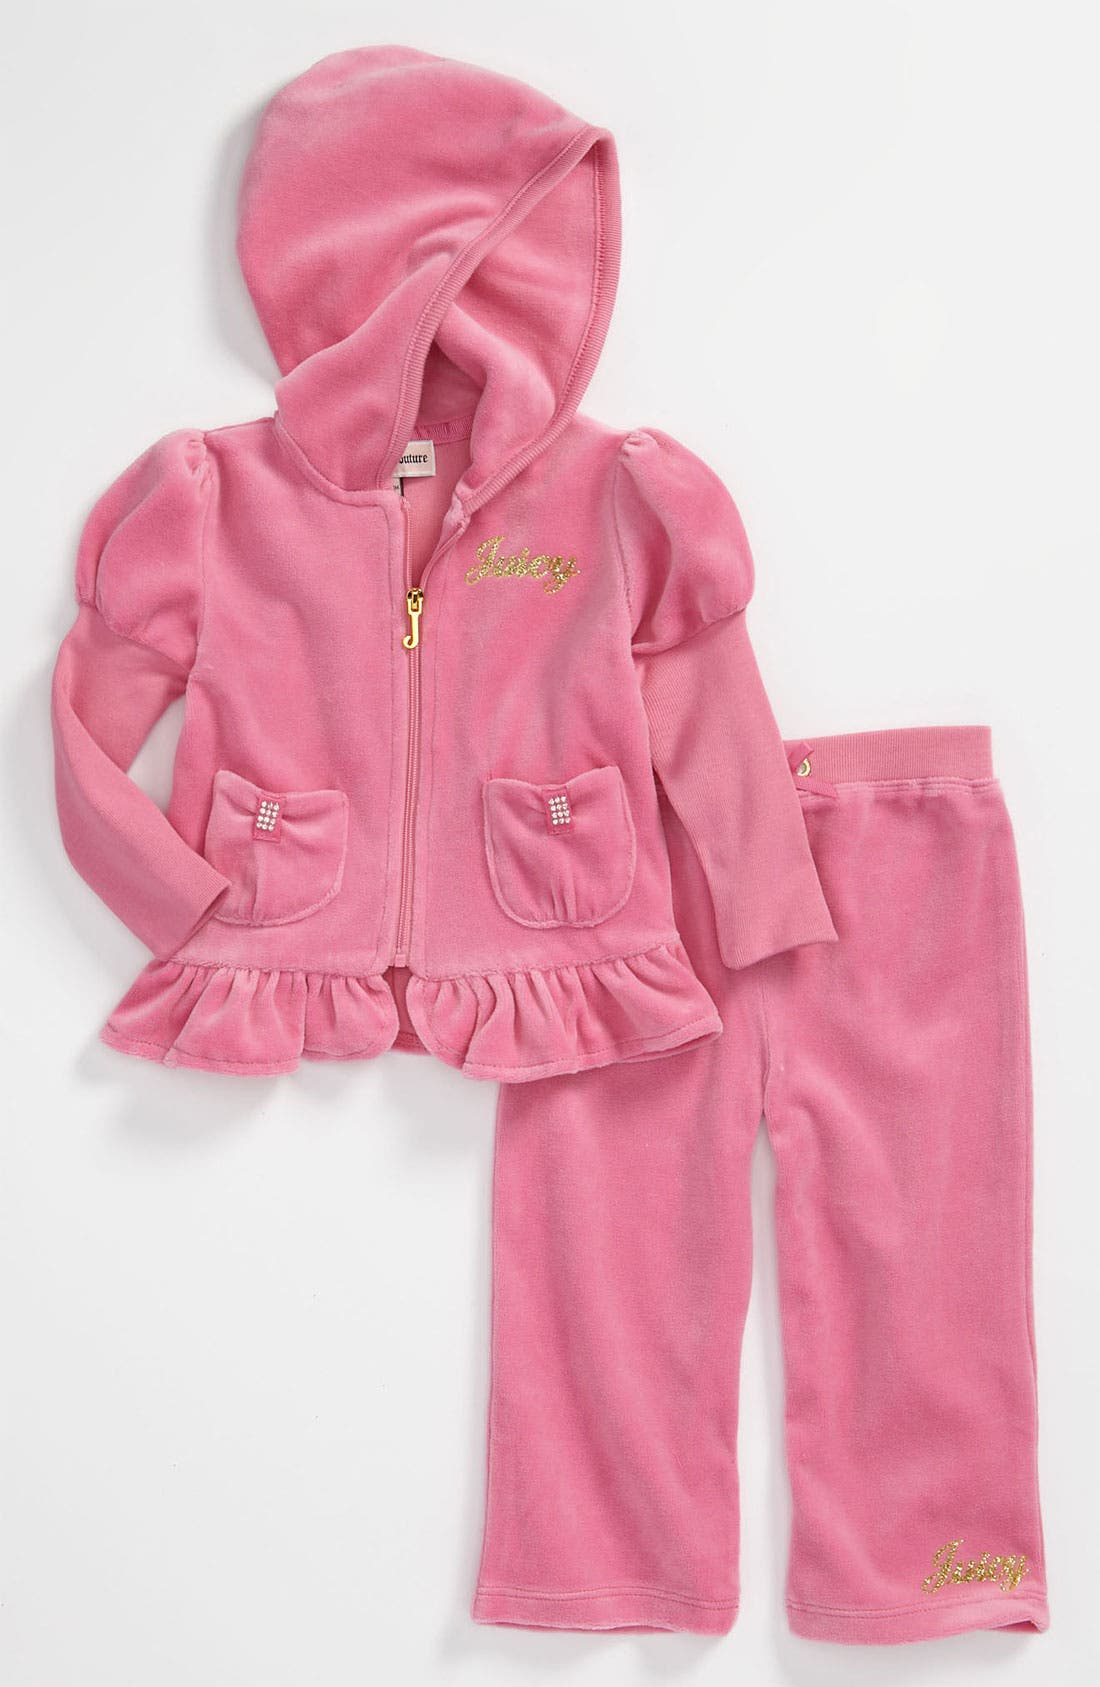 Alternate Image 1 Selected - Juicy Couture Velour Hoodie & Pants (Infant)